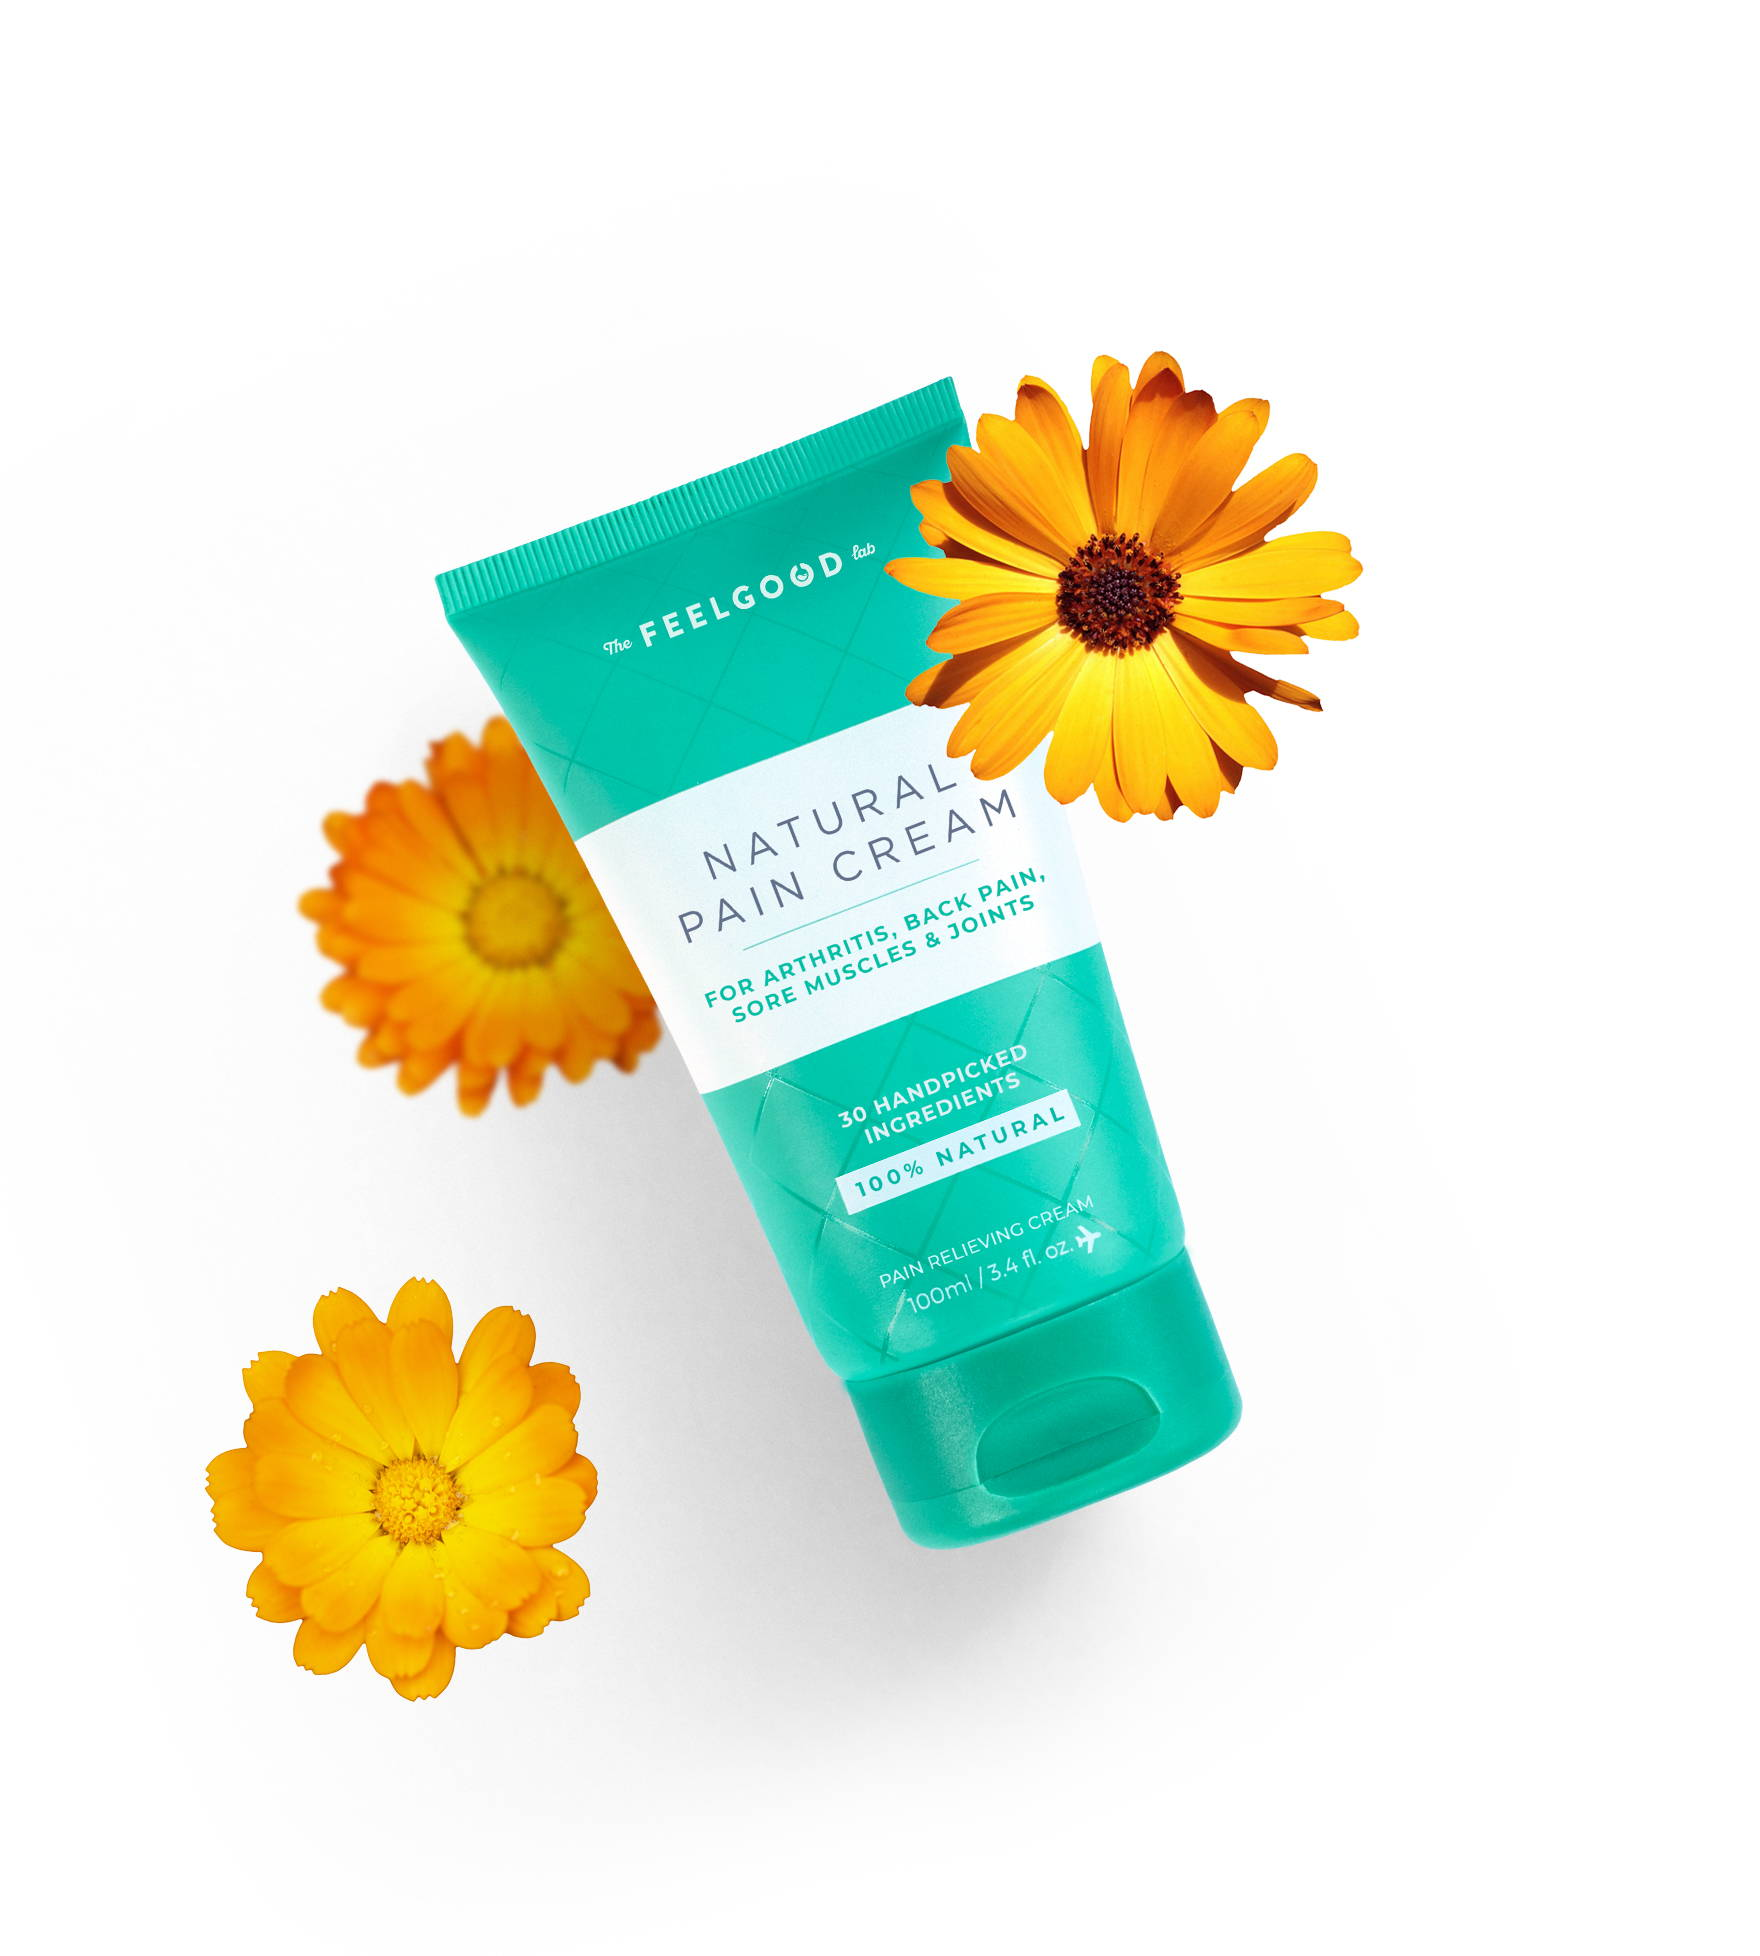 Pain relief cream with Calendula